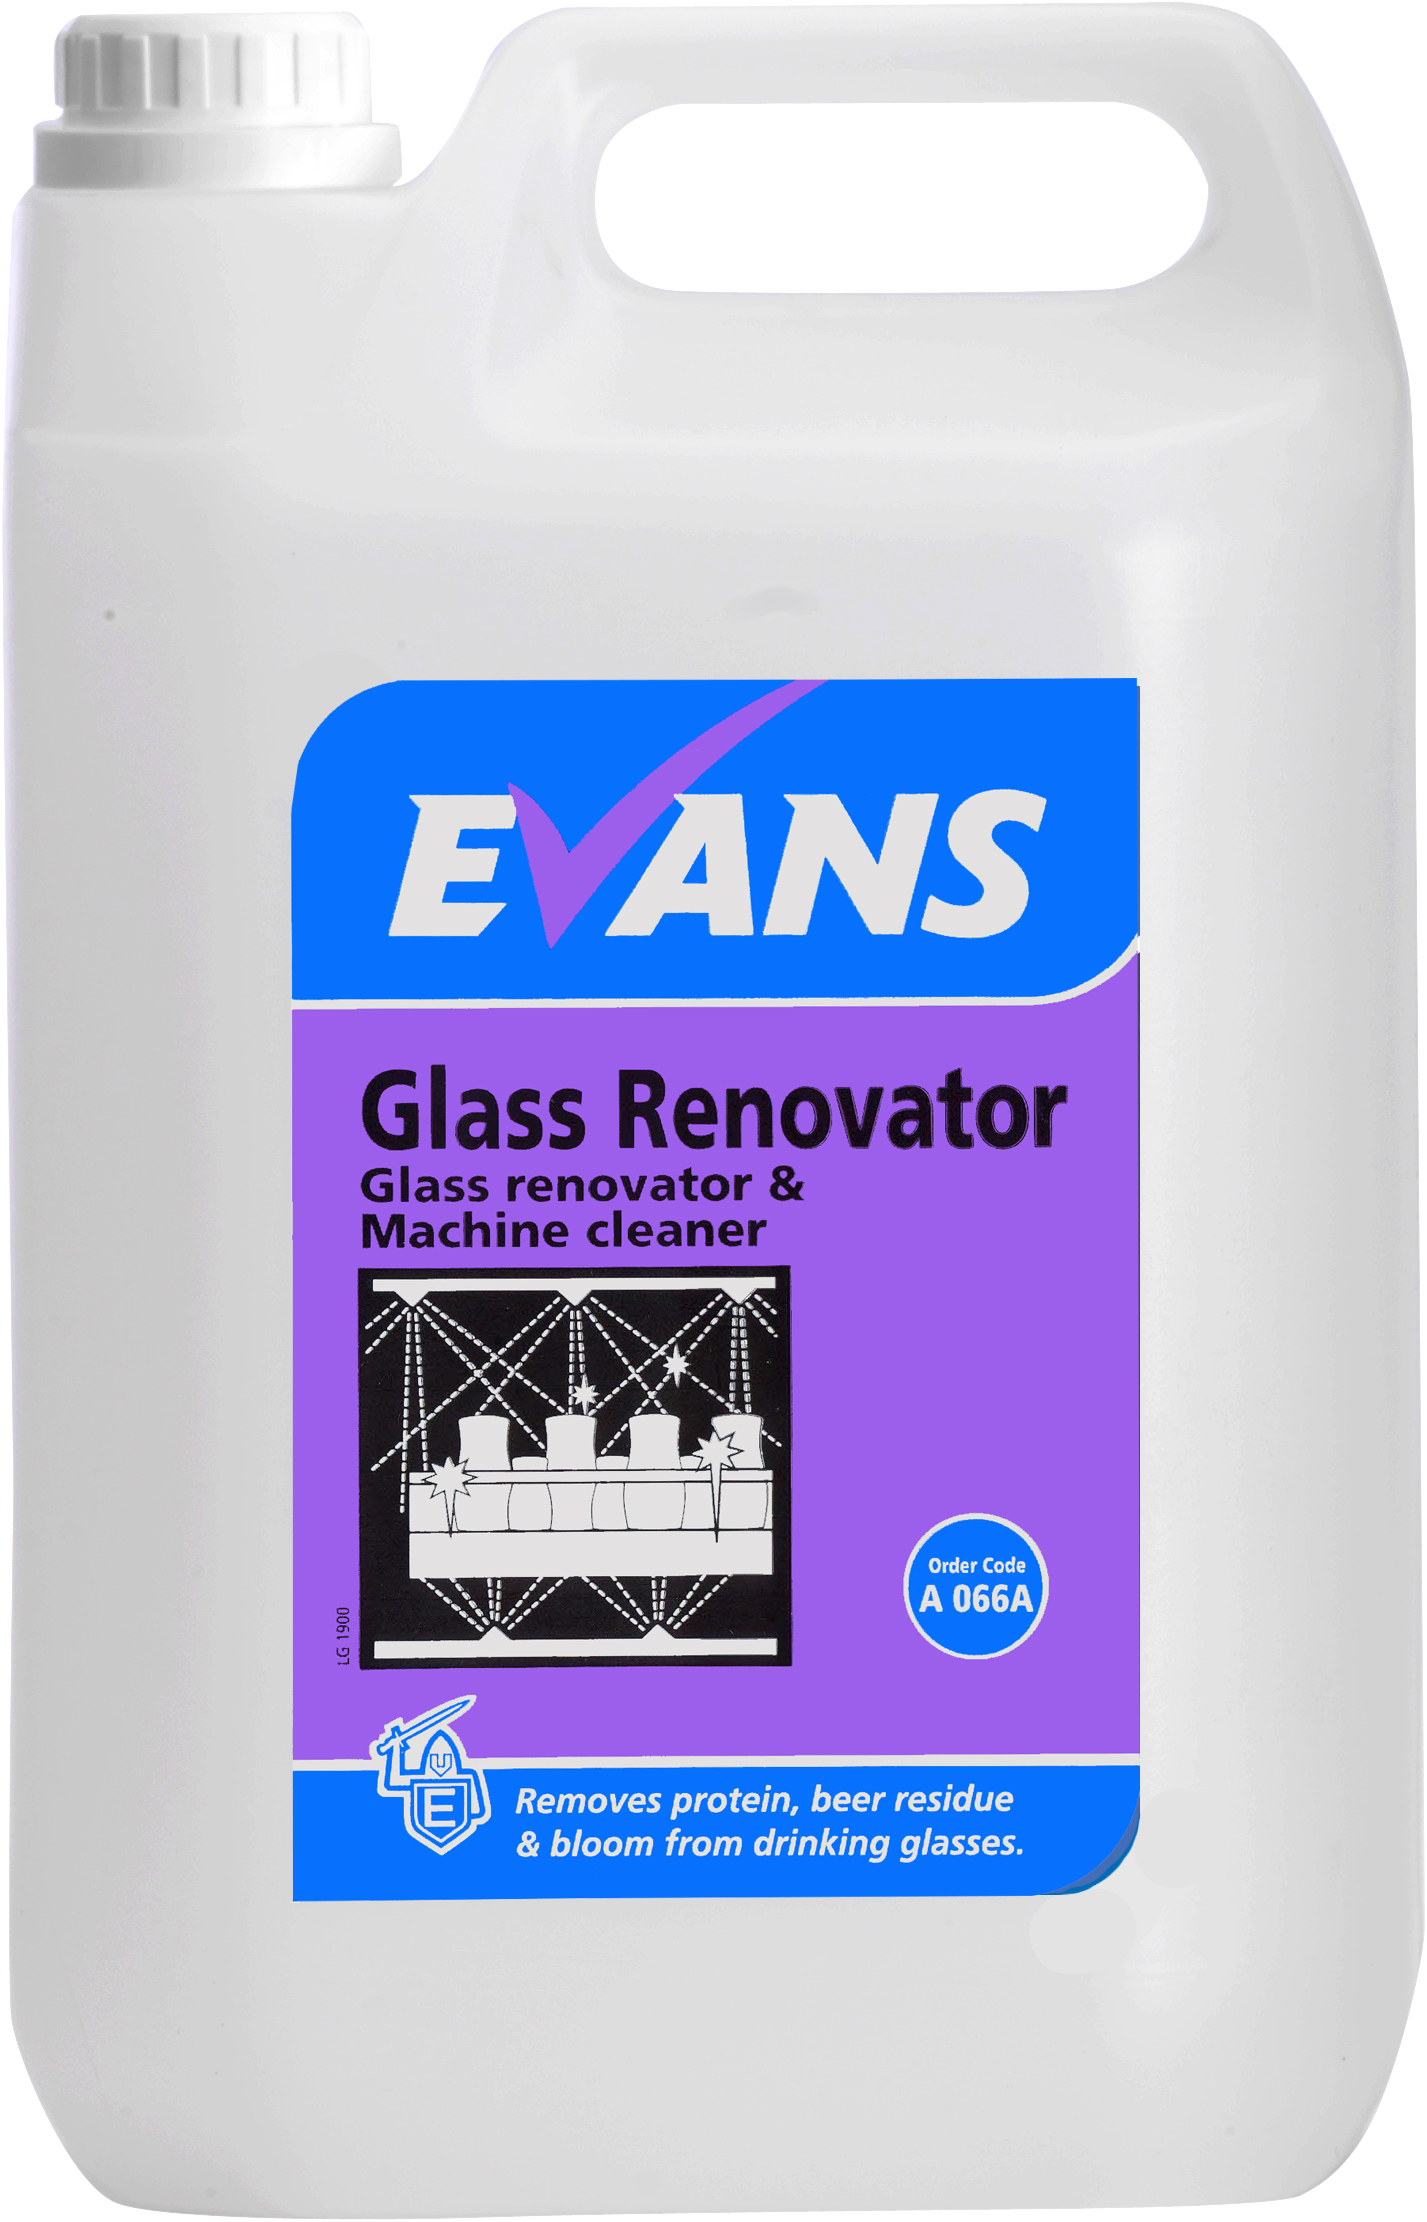 GLASS RENOVATOR & MACHINE CLEANER 2.5LTR